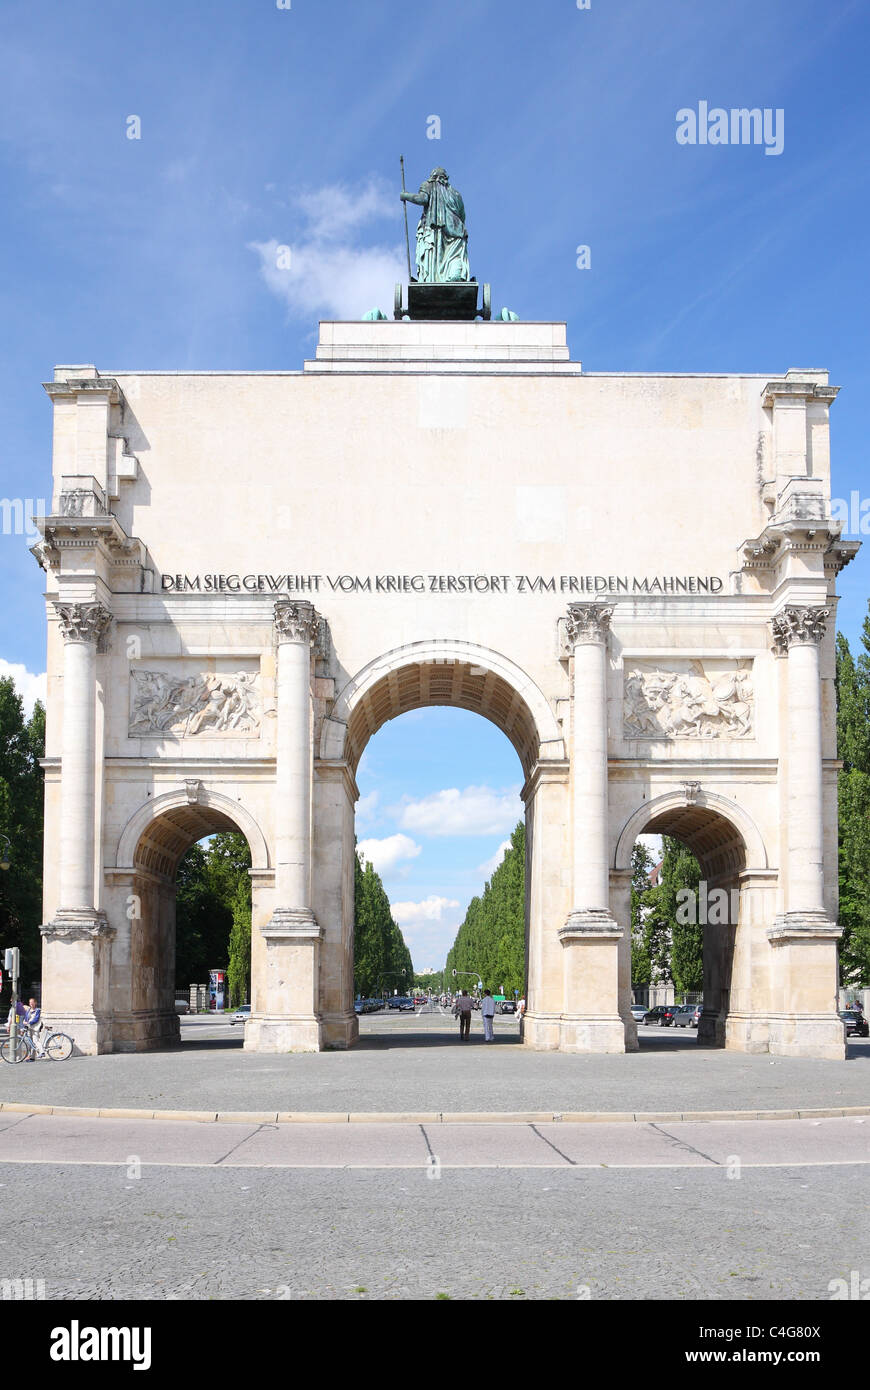 Southbound view of the Victory Gate ('Siegestor') in Munich, Bavaria, Germany - Stock Image